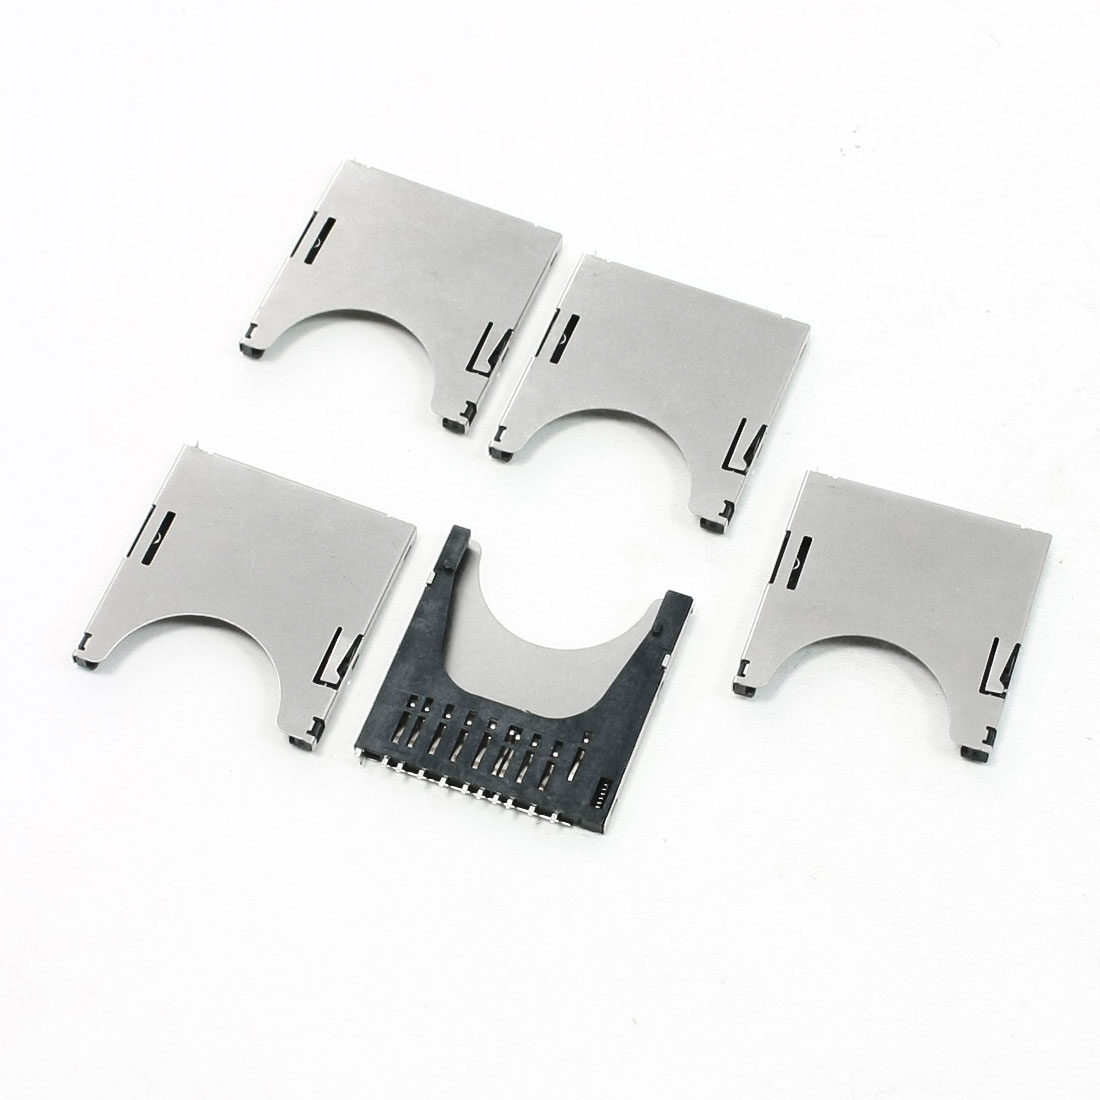 5 Pcs Push-in Push-Out Type SD Memory Card Sockets